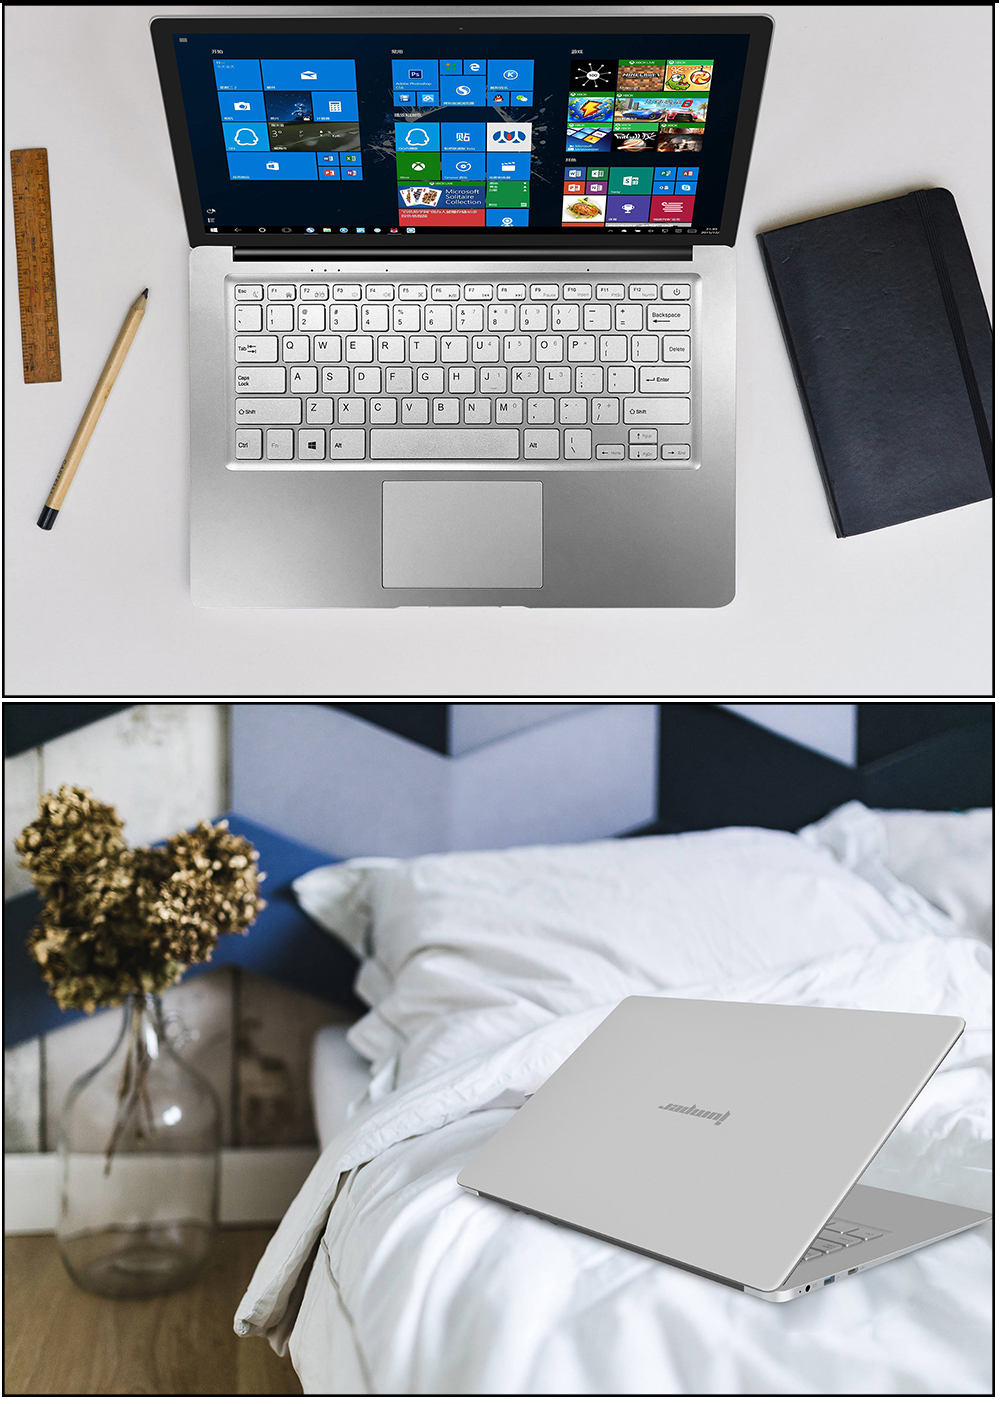 EZbook S4 Notebook (9)